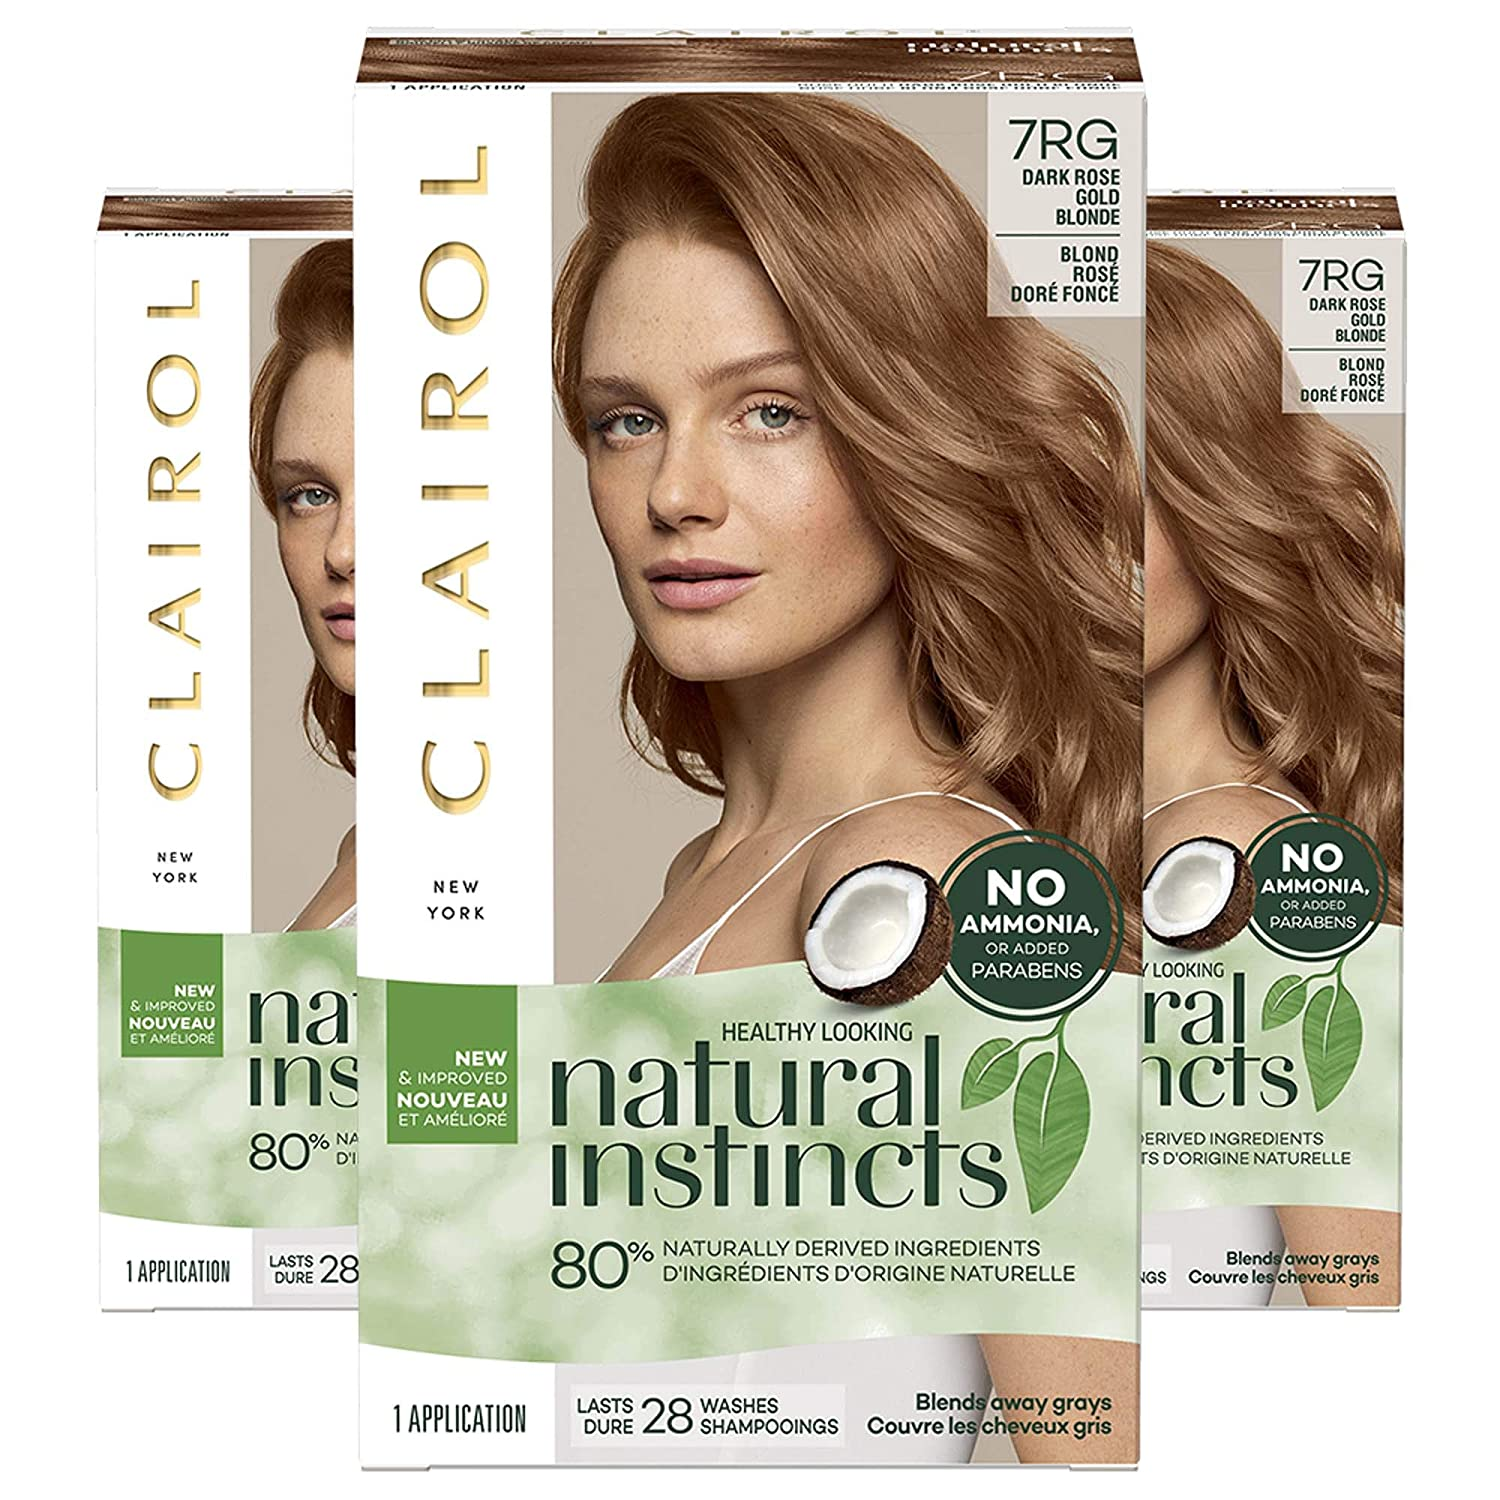 Amazon Com Clairol Natural Instincts Semi Permanent 7rg Dark Rose Gold Blonde Rose Gold 3 Count Beauty